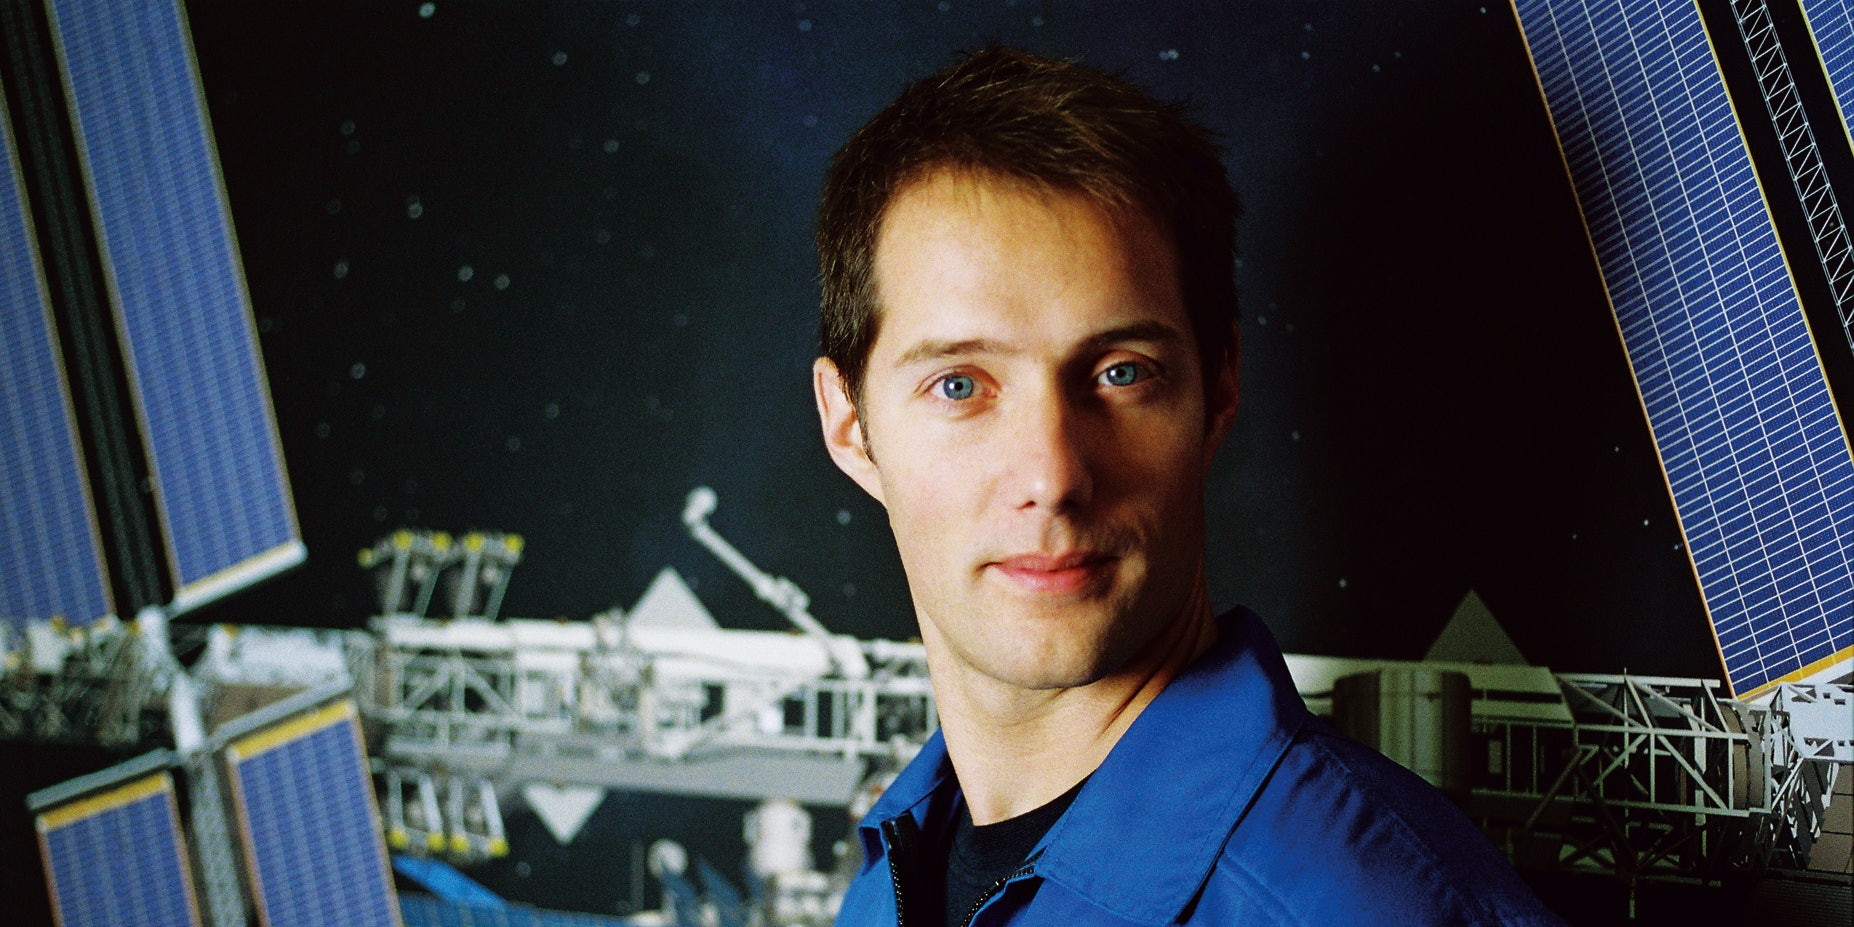 French Astronaut Thomas Pesquet is Earth's New Orbital Heartthrob